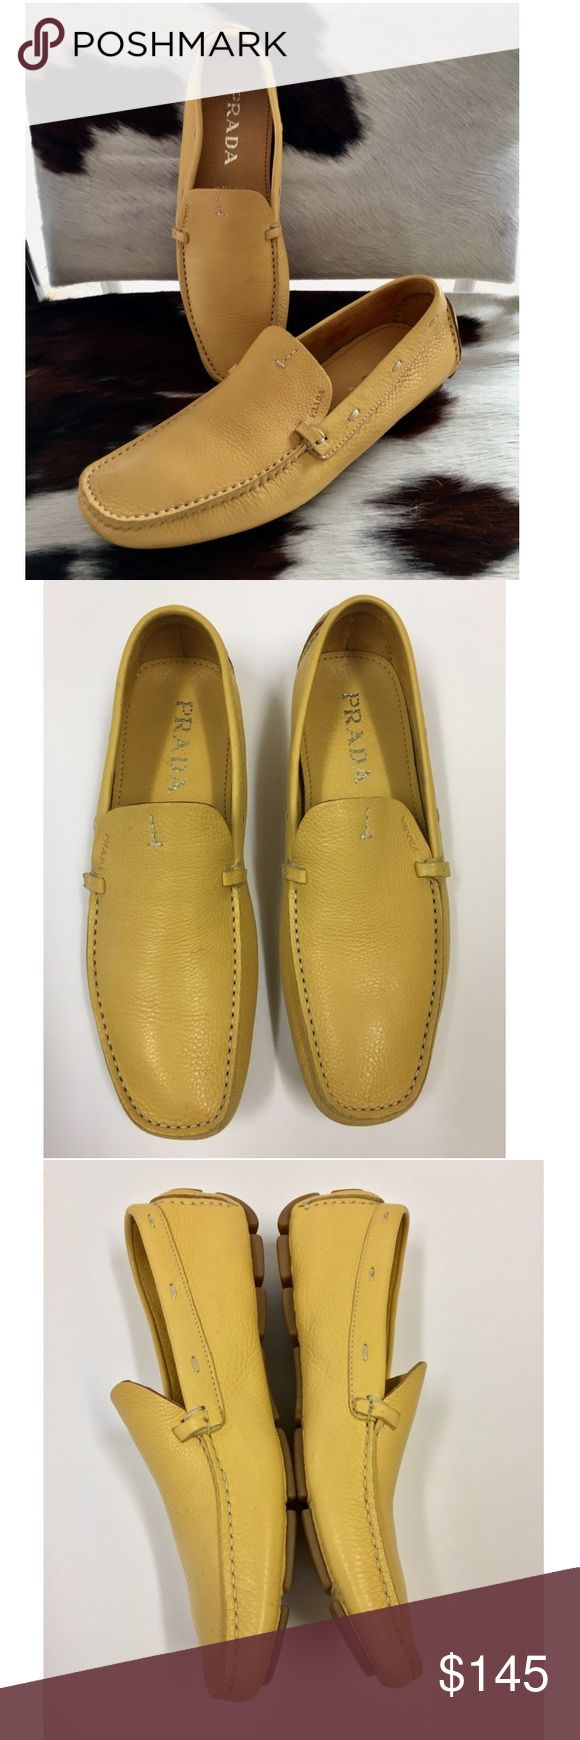 """PRADA MUSTARD LEATHER DRIVING LOAFER SIZE 361/2 Authentic Prada square-toe driving loafers with engraved logo accents at uppers, contrast stitching throughout and rubber soles.  Heels: 0.25""""  • Condition: Excellent. Minor wear on outer soles. Unnoticeable scuffs on outer shoes  • Please see all pictures and feel free to ask questions...best offer accepted Prada Shoes Flats & Loafers"""